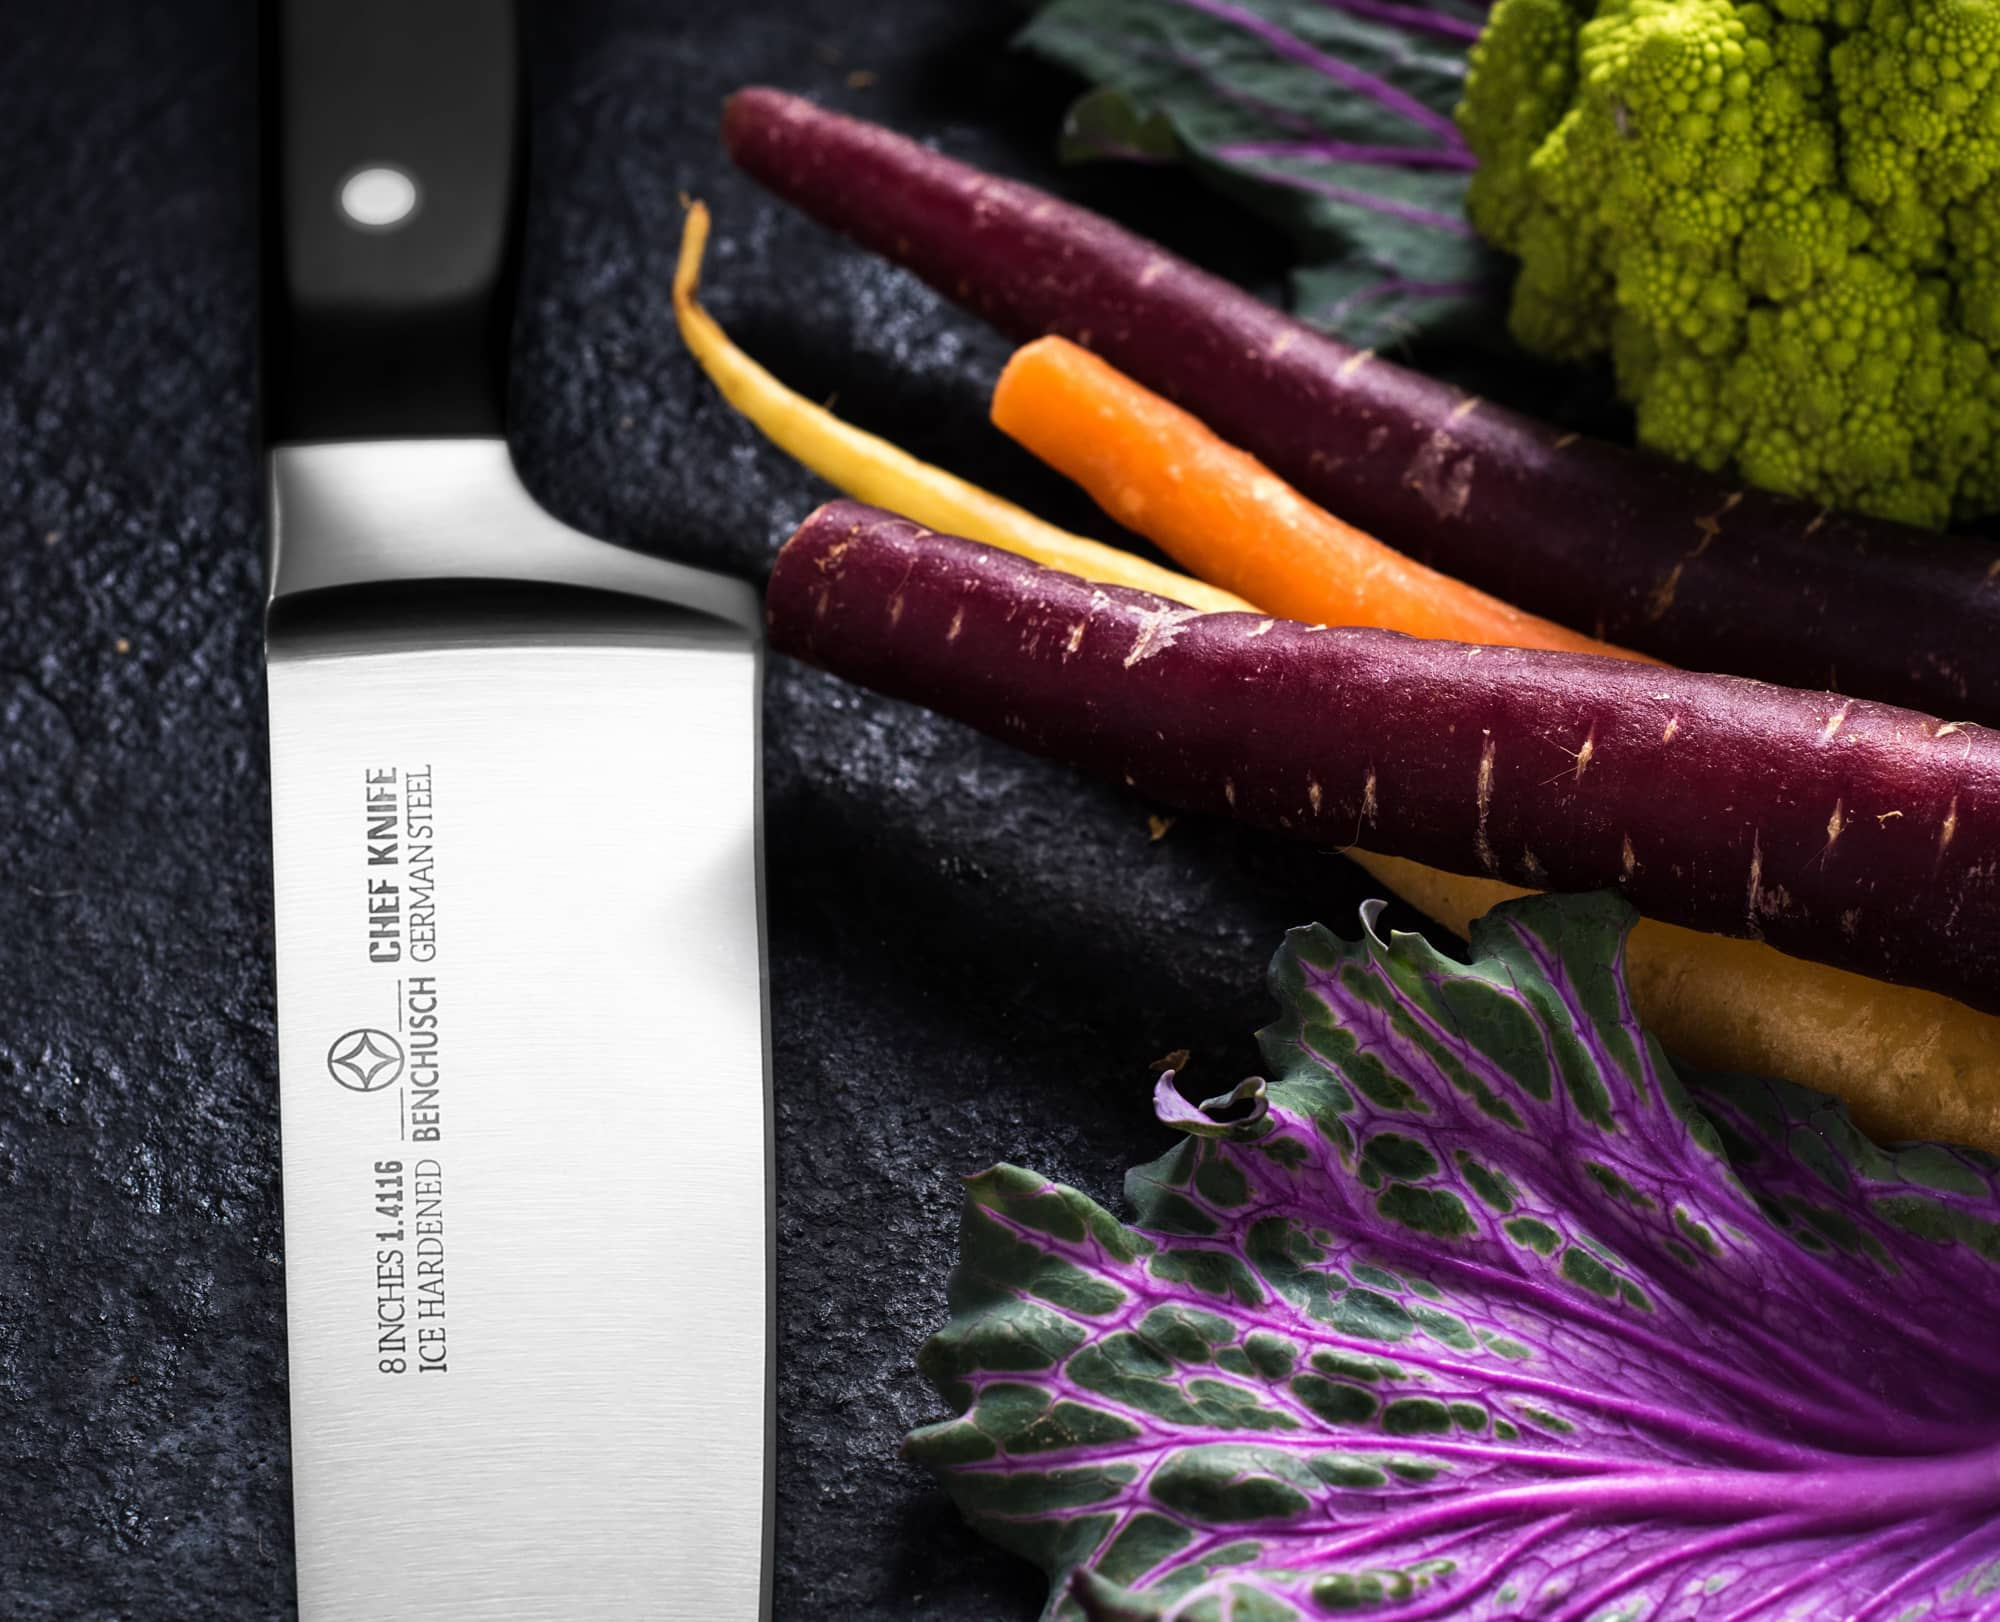 Benchusch Professional 8-Inch Chef Knife with vegetbles on the dark background